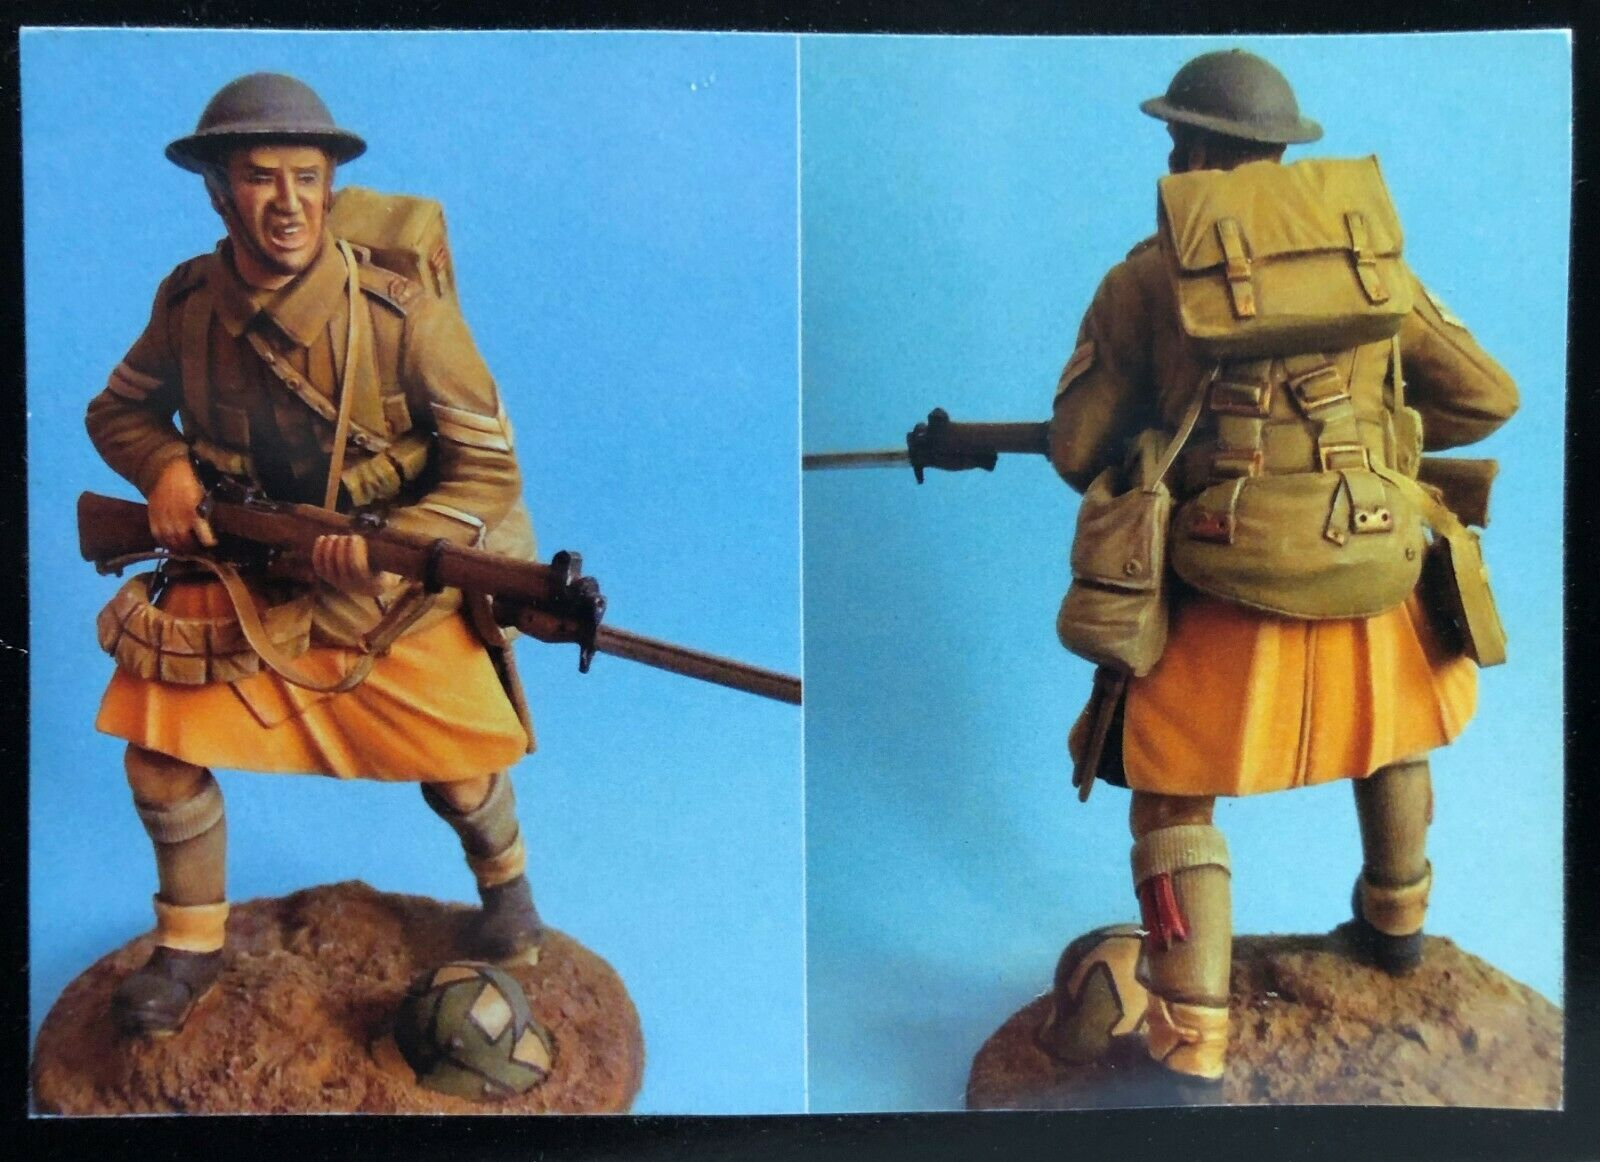 116 120MM RESIN cifra IMPERIAL GtuttiERY BRITISH INFANTRYuomo 1916 WWI. nuovo.